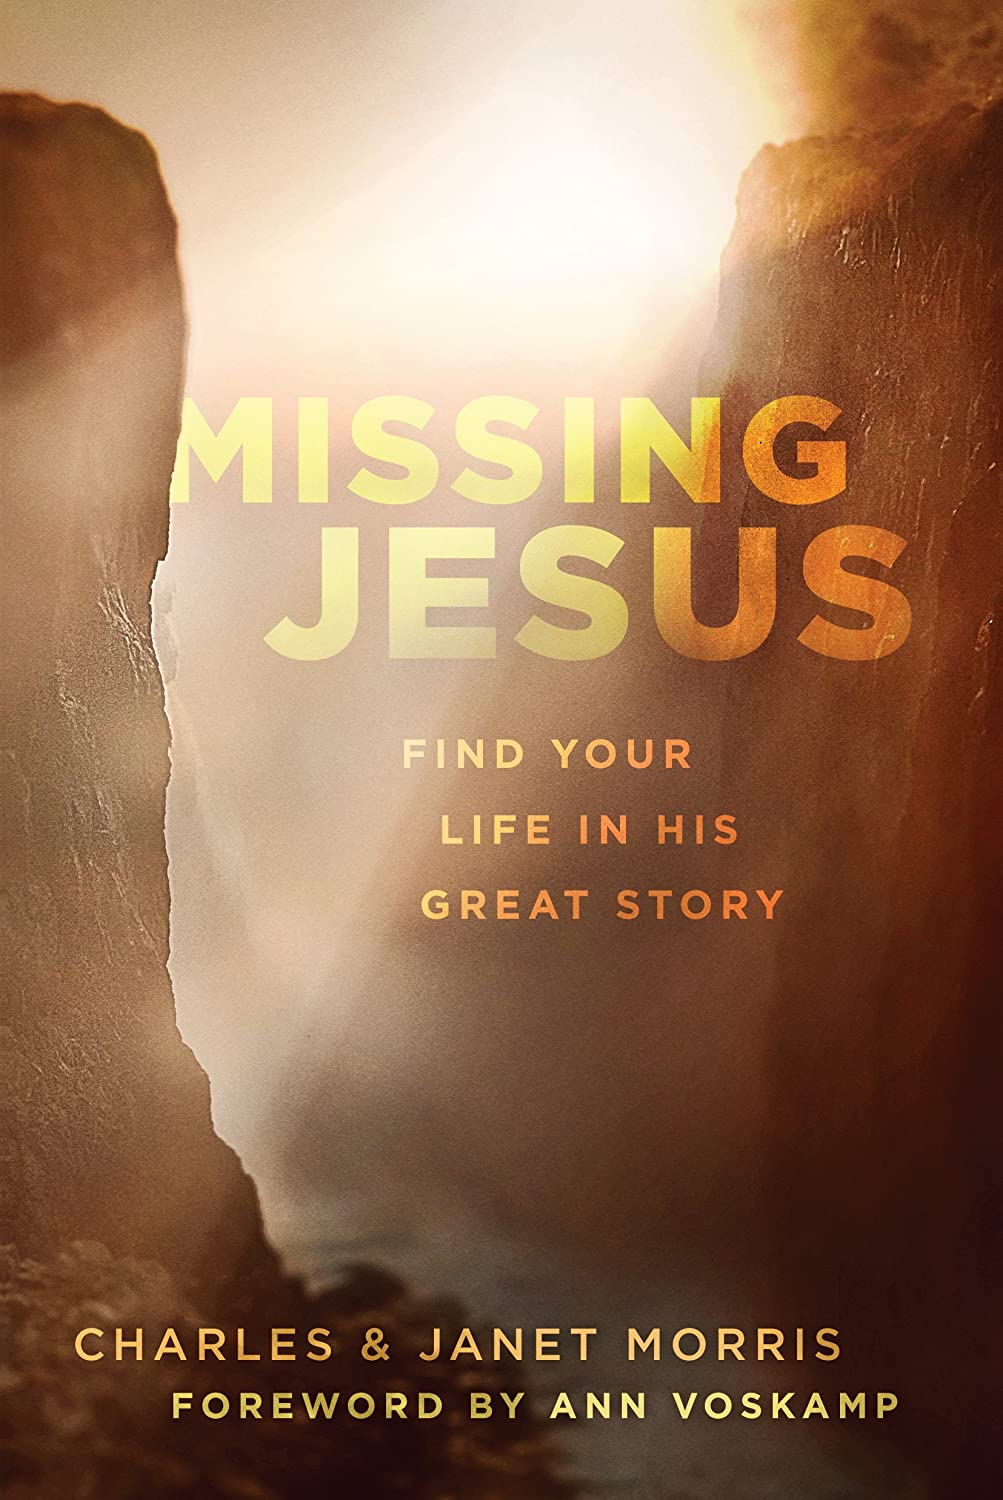 Missing Jesus: Find Your Life in His Great Story